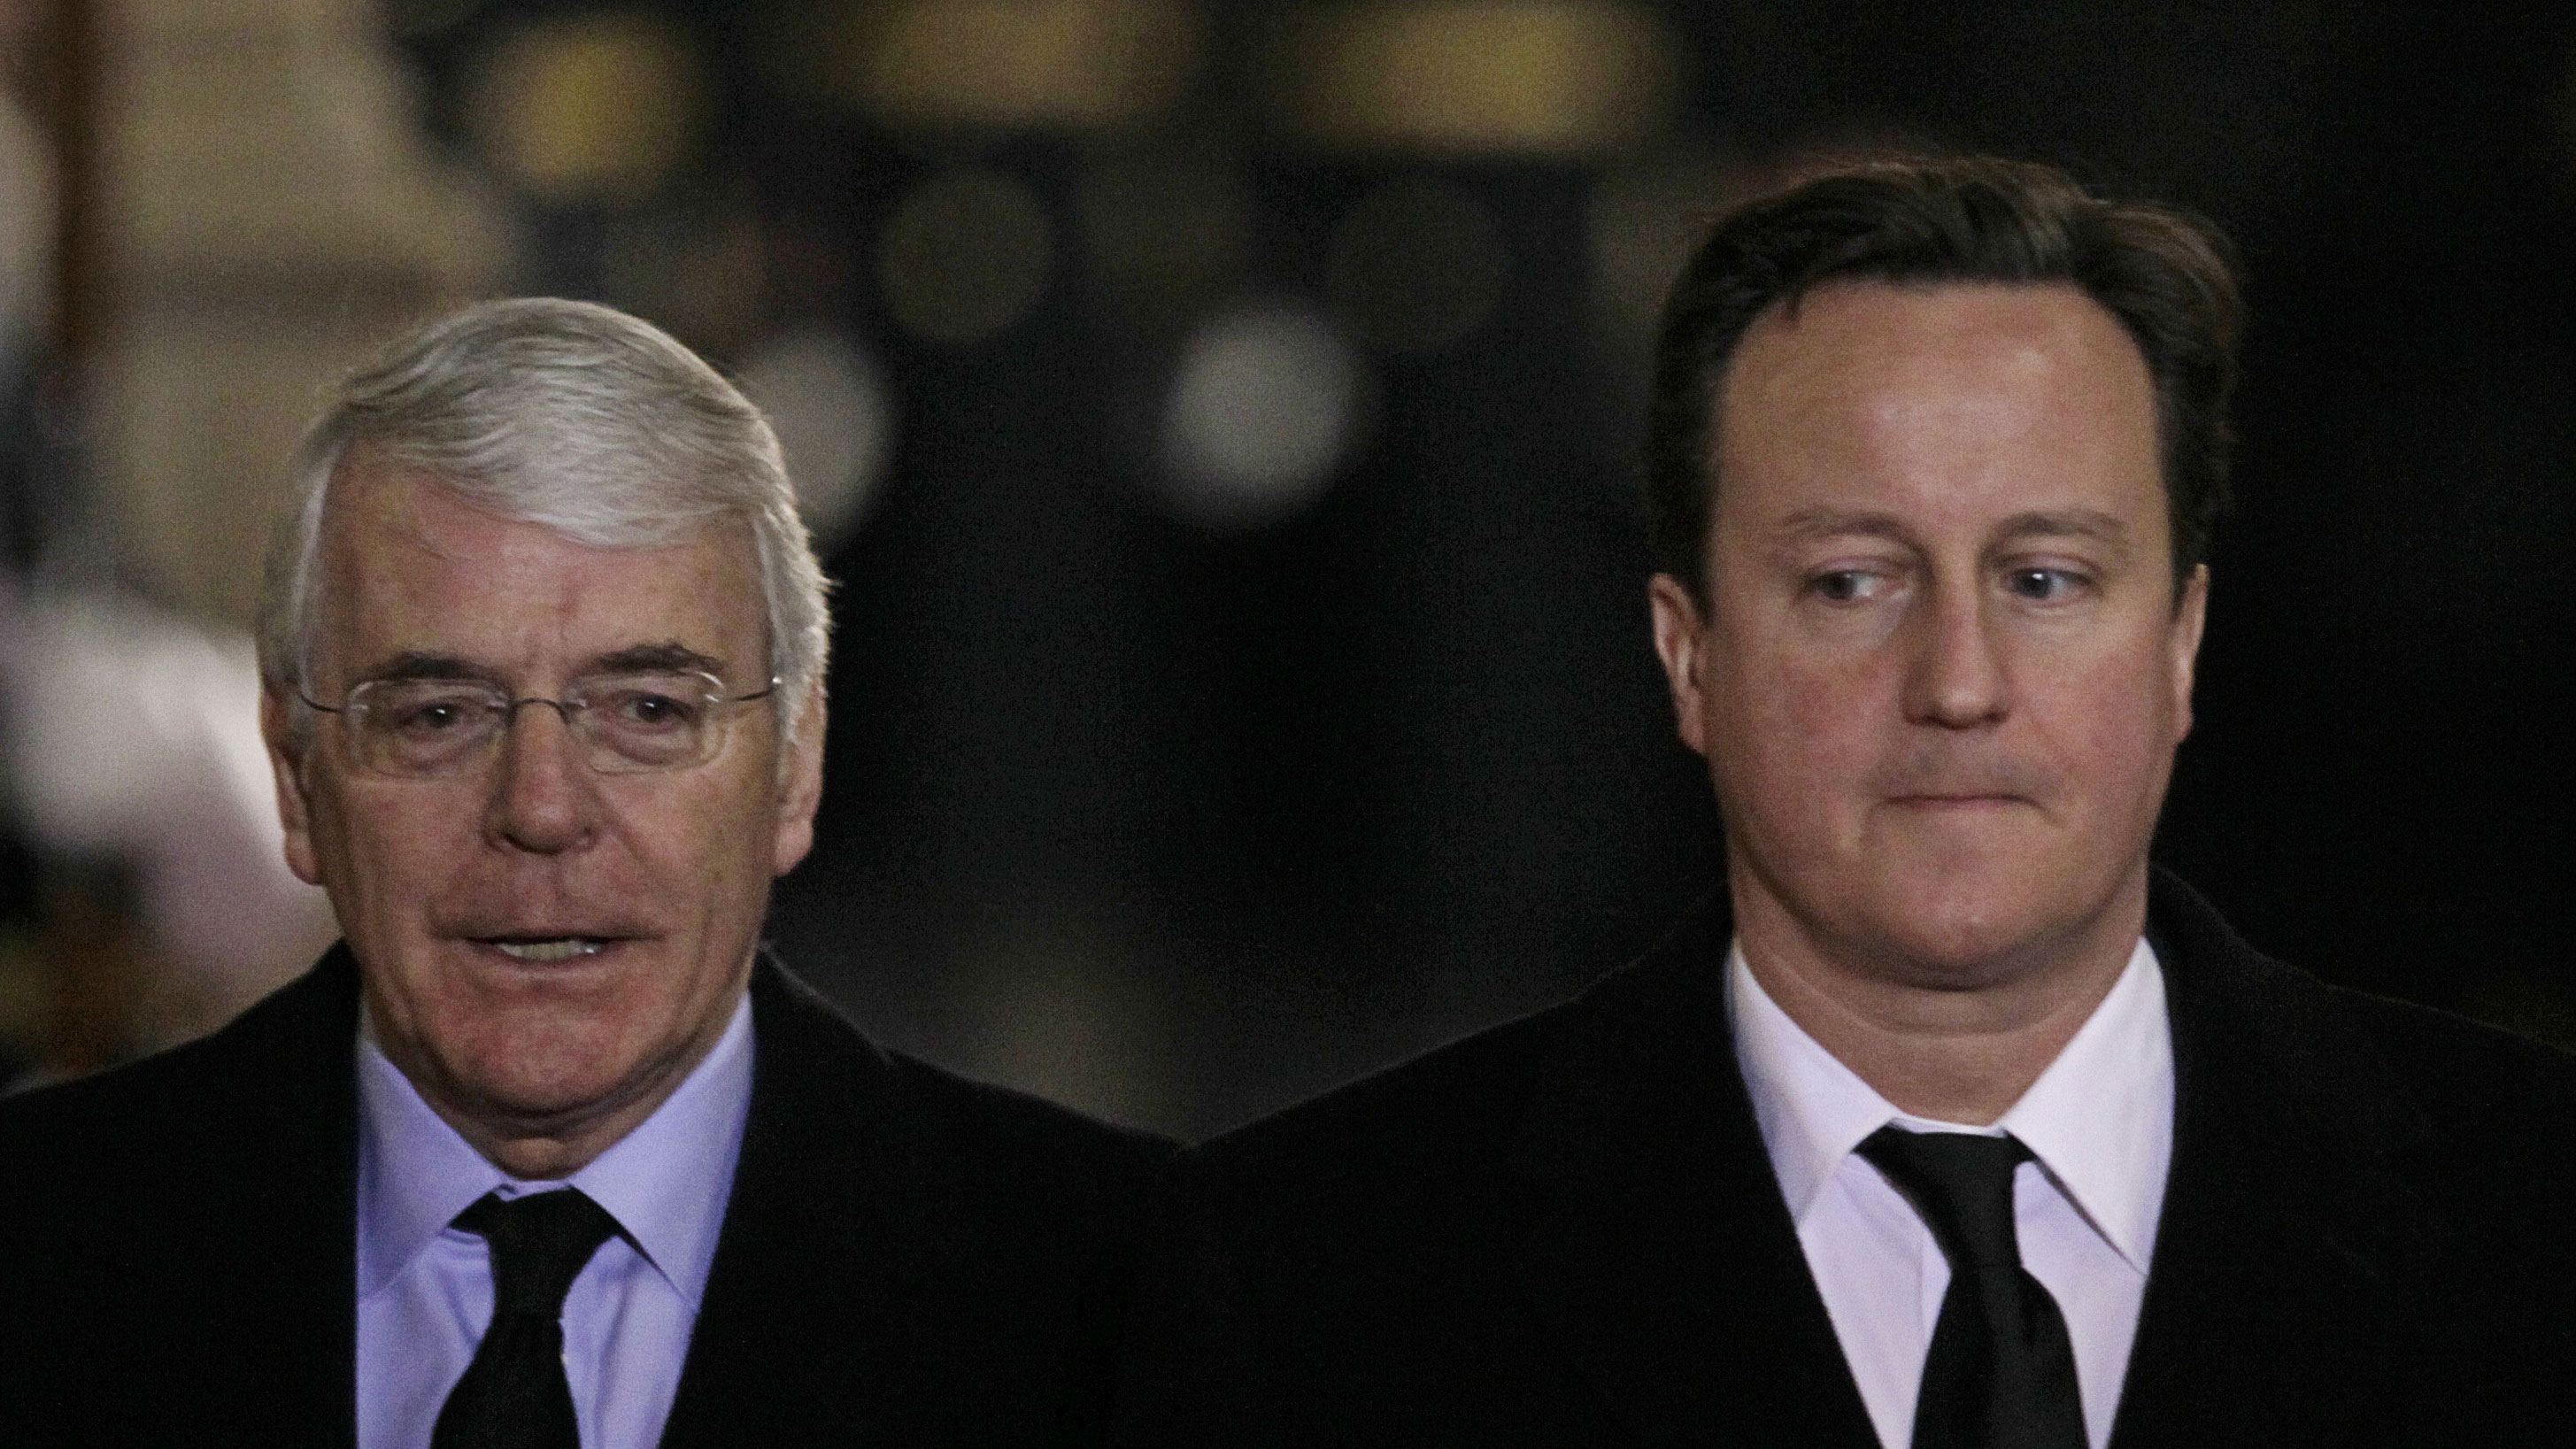 Former prime minister John Major throws support behind David Cameron's plan to allow same-sex marriage in religious settings such as churches, joining high-profile Tories Boris Johnson and Gove